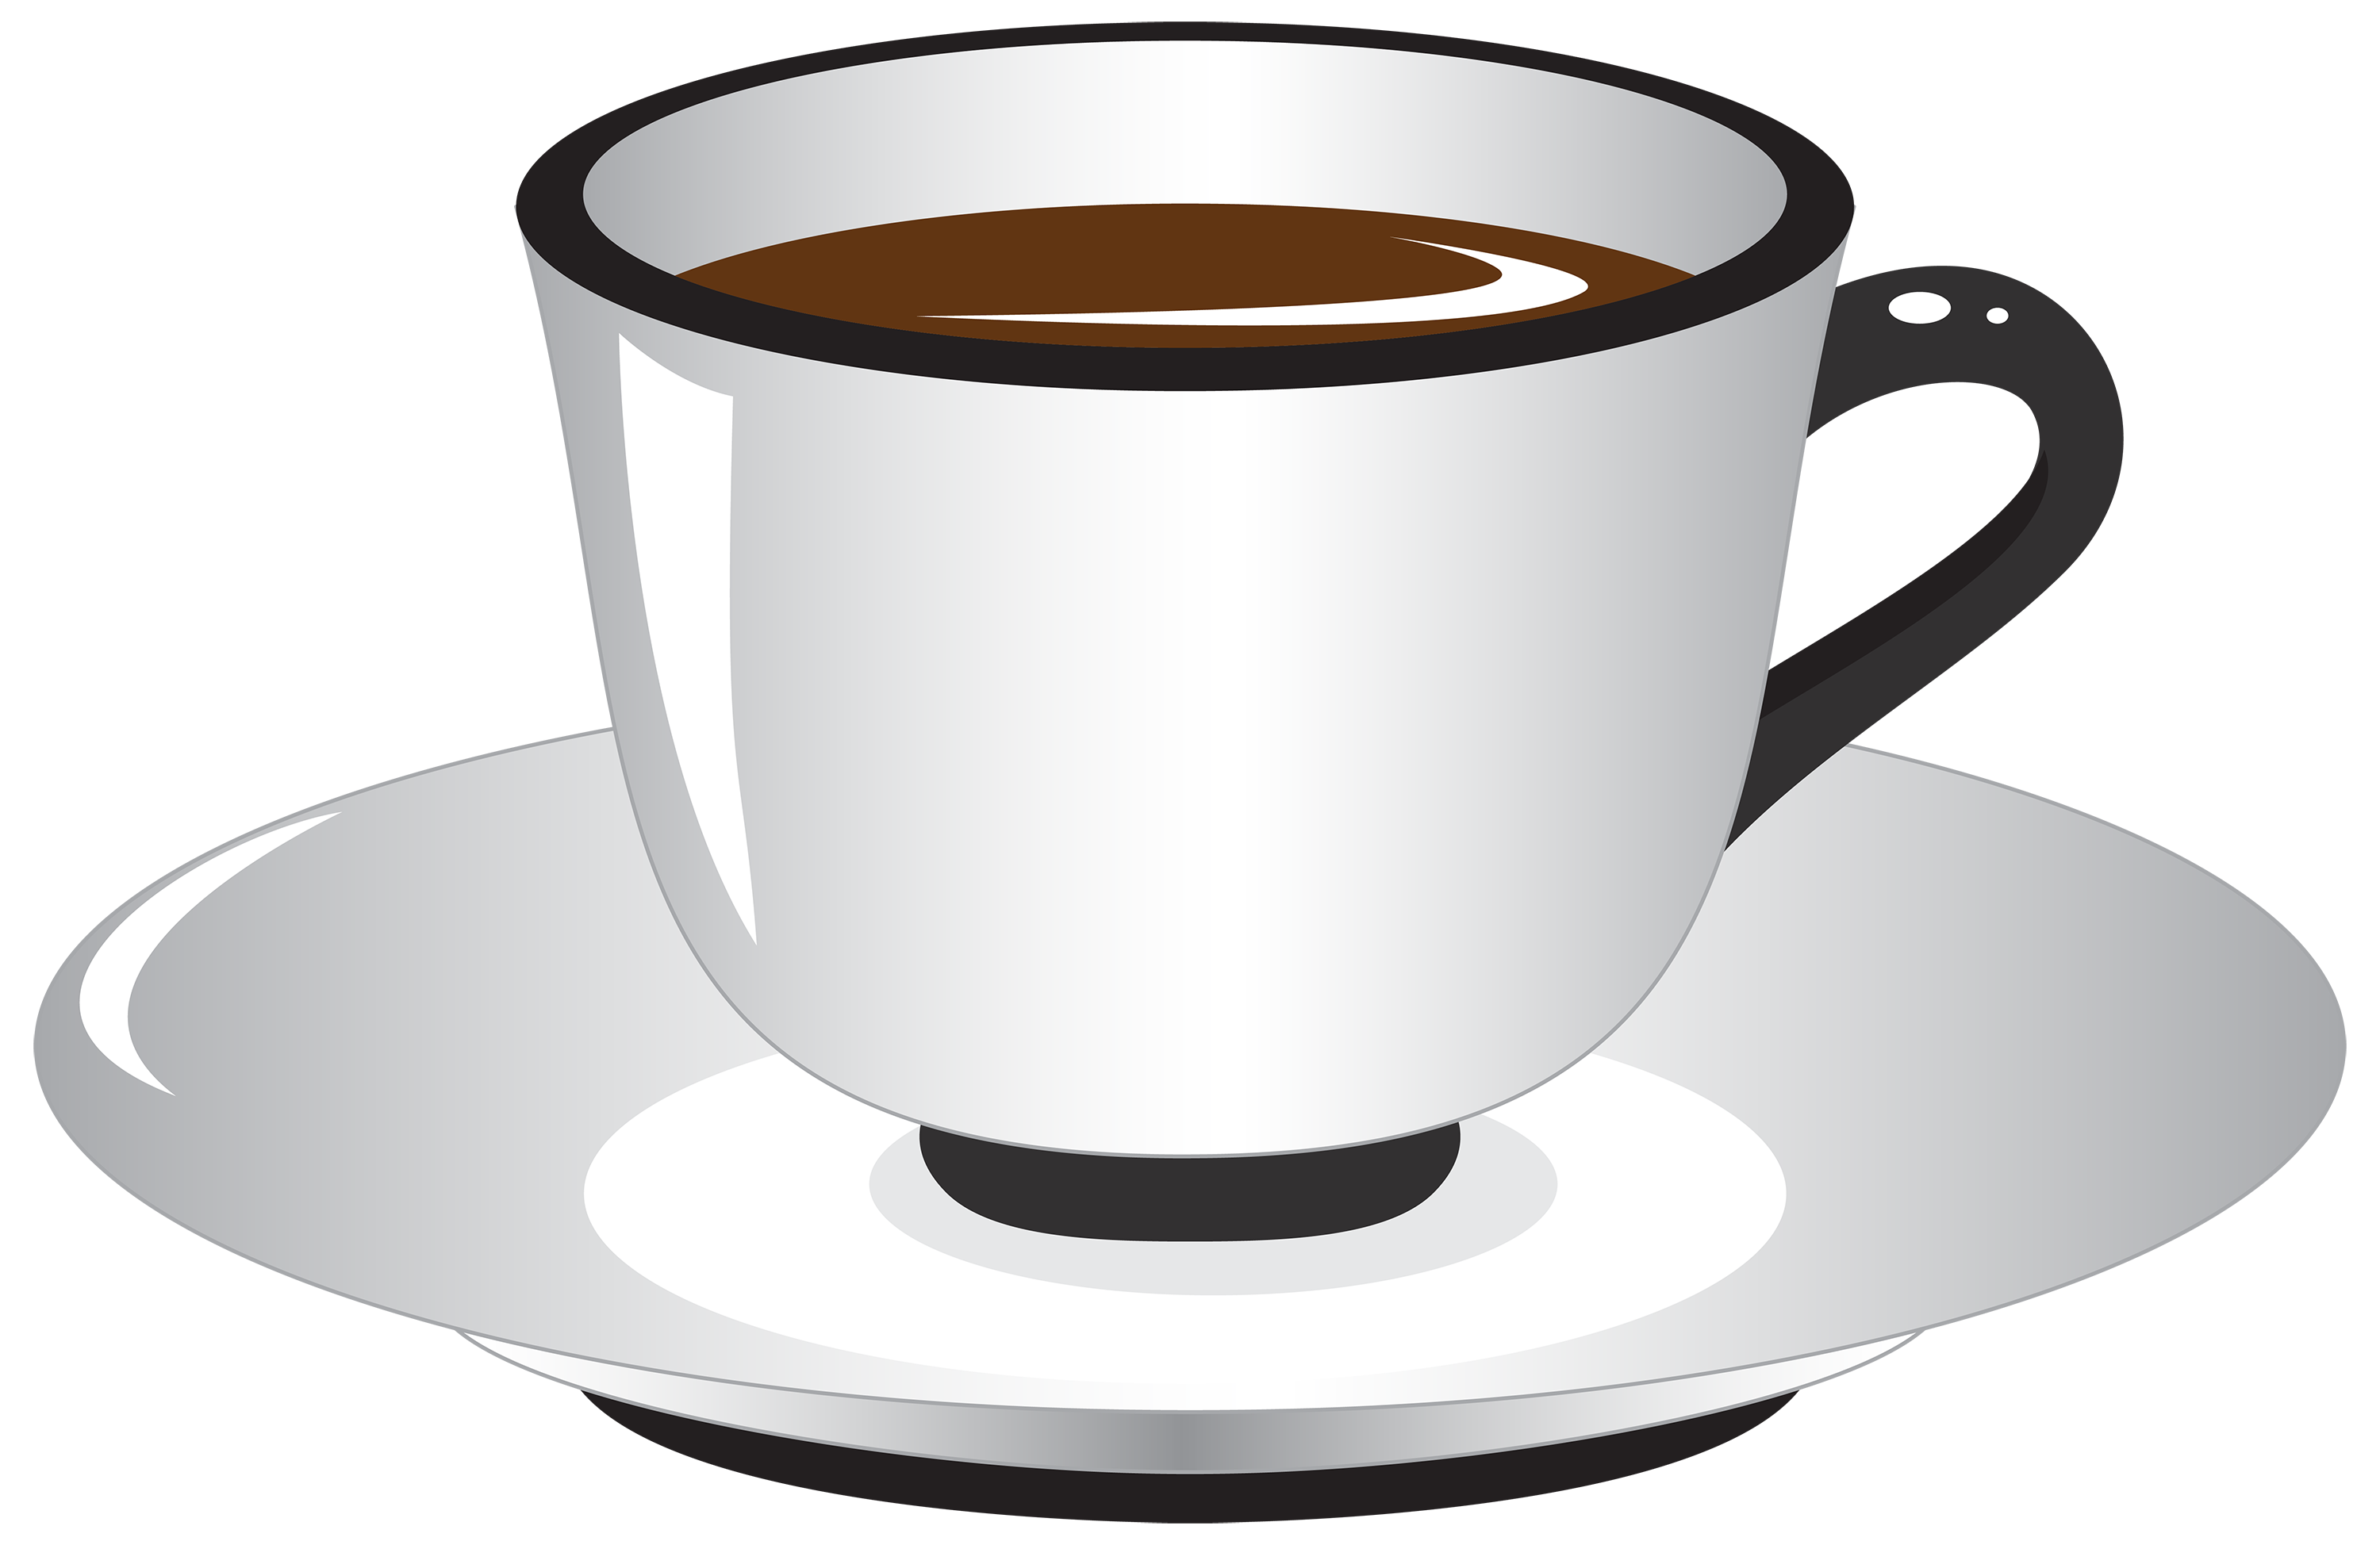 3000x1948 Coffee Cup Coffee Mug Clip Art Free Vector For Download About 2